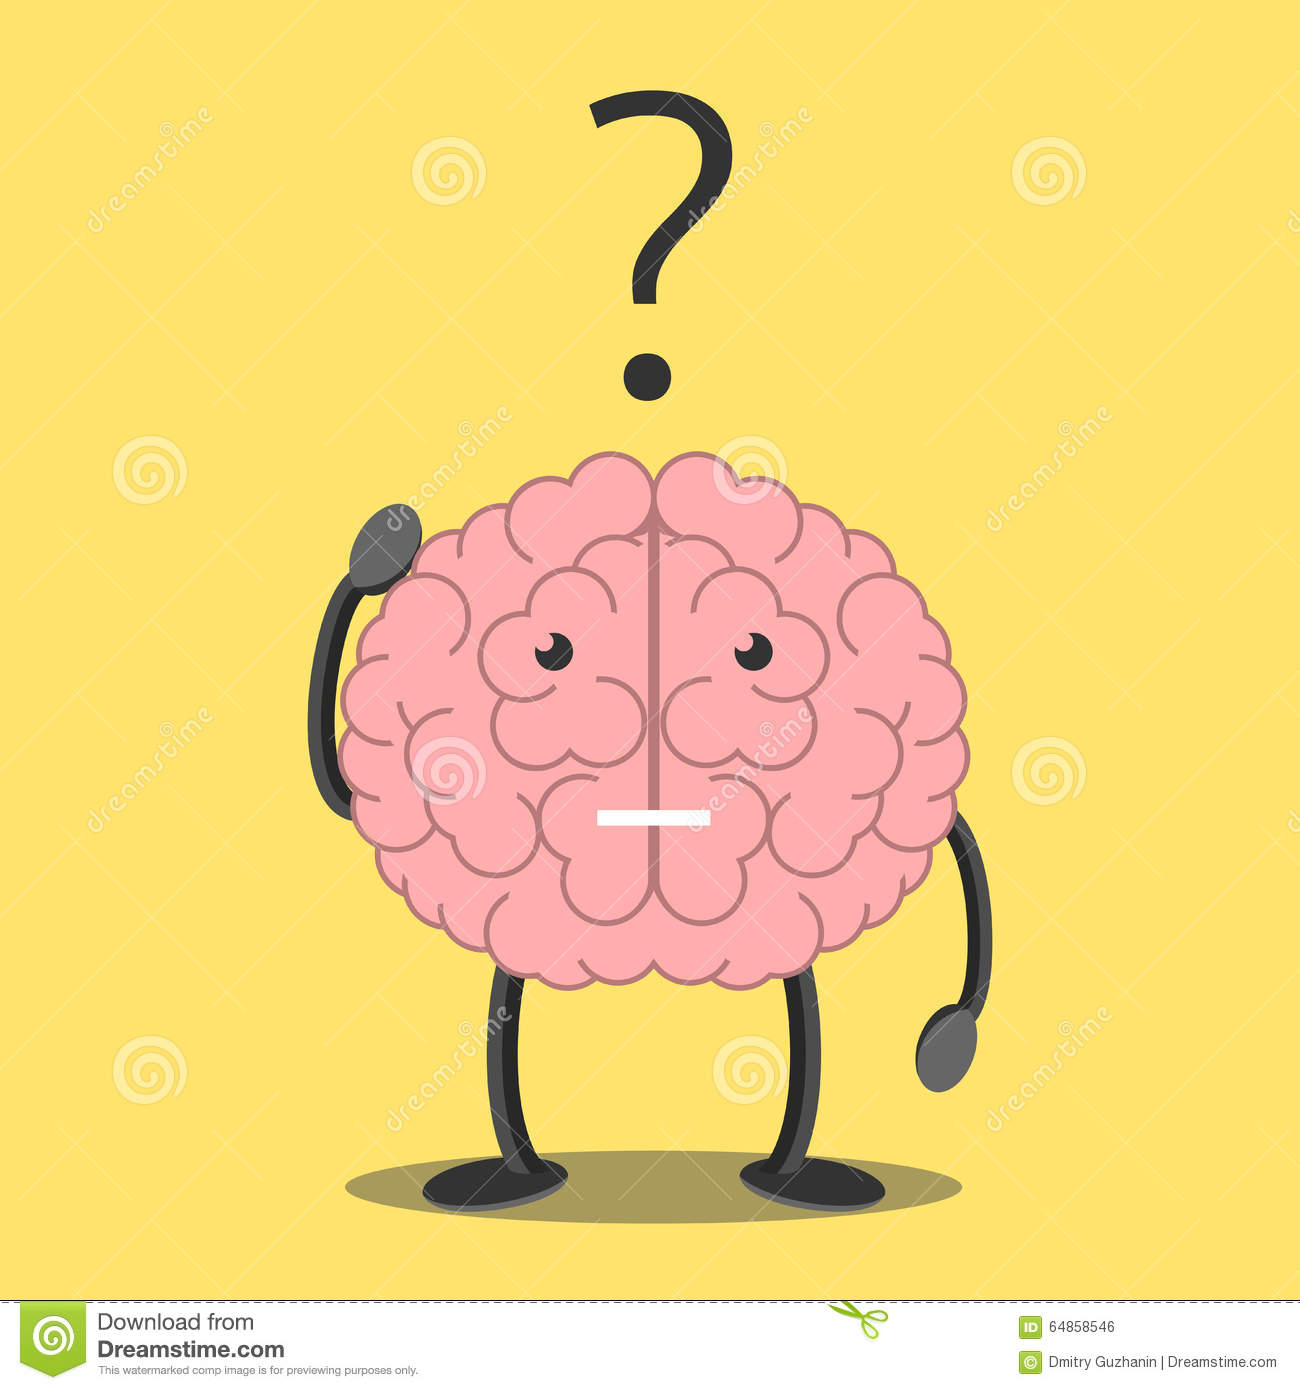 Pics photos clip art cartoon scientist with question mark stock - Brain Character Thinking Royalty Free Stock Image